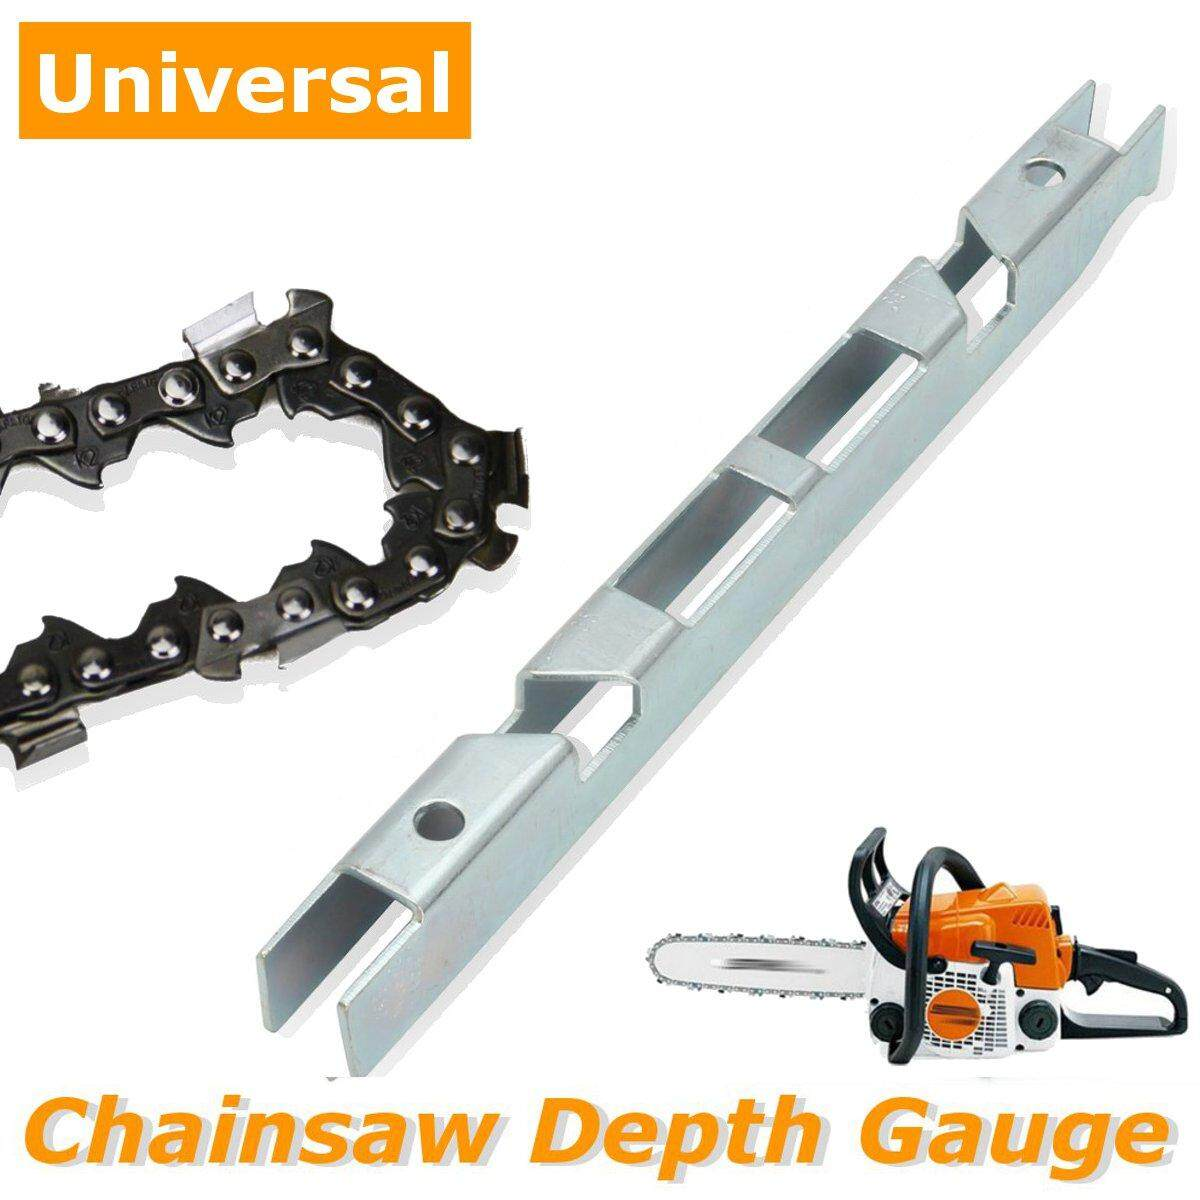 Universal Chainsaw Chain Depth Gauge File Guide Tool & Guide Bar Groove Cleaner